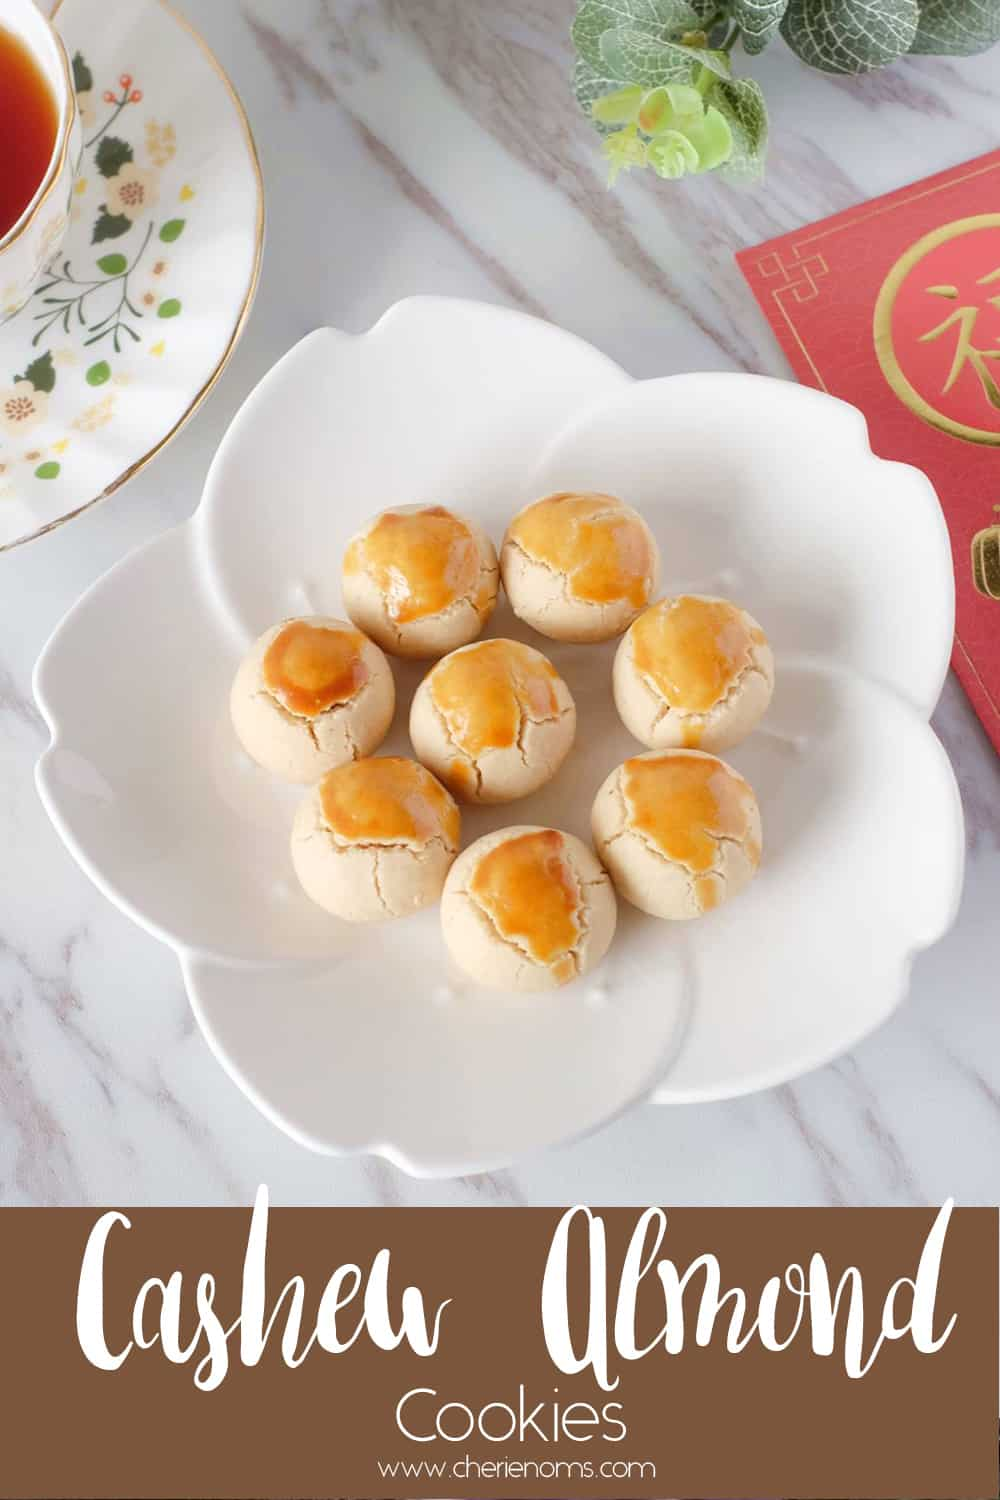 These cashew almond cookies are dense and have a melt-in-mouth texture! Celebrate this Chinese New Year with these healthier, less sweet cookies made with natural cashew nut butter. Save this recipe for later! via @cherienoms